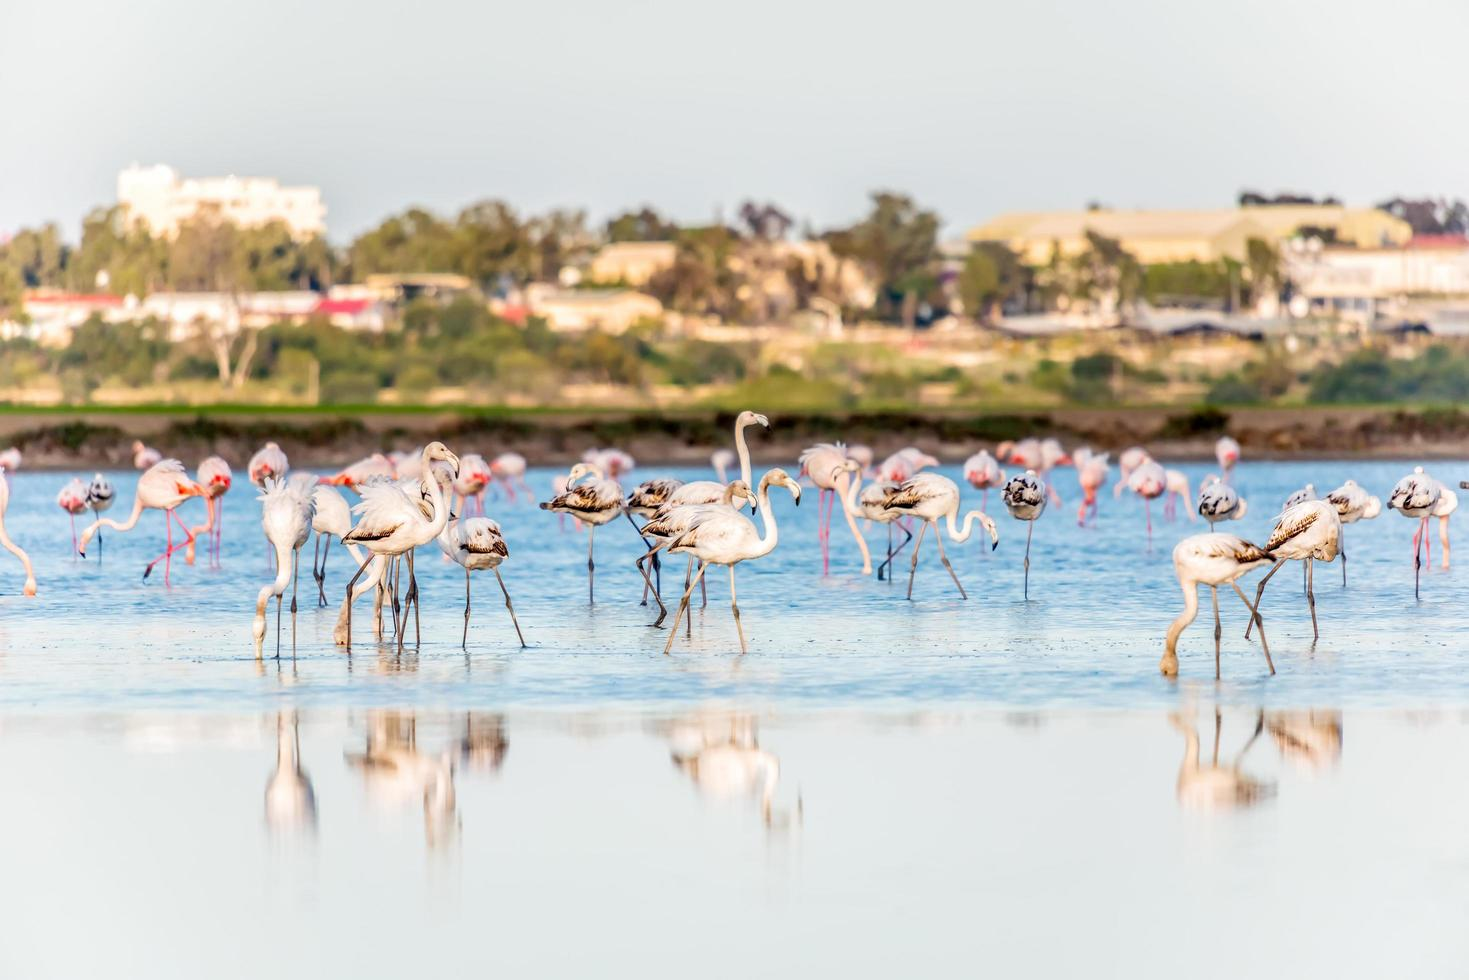 Flamants roses au lac salé de Larnaca, Chypre photo